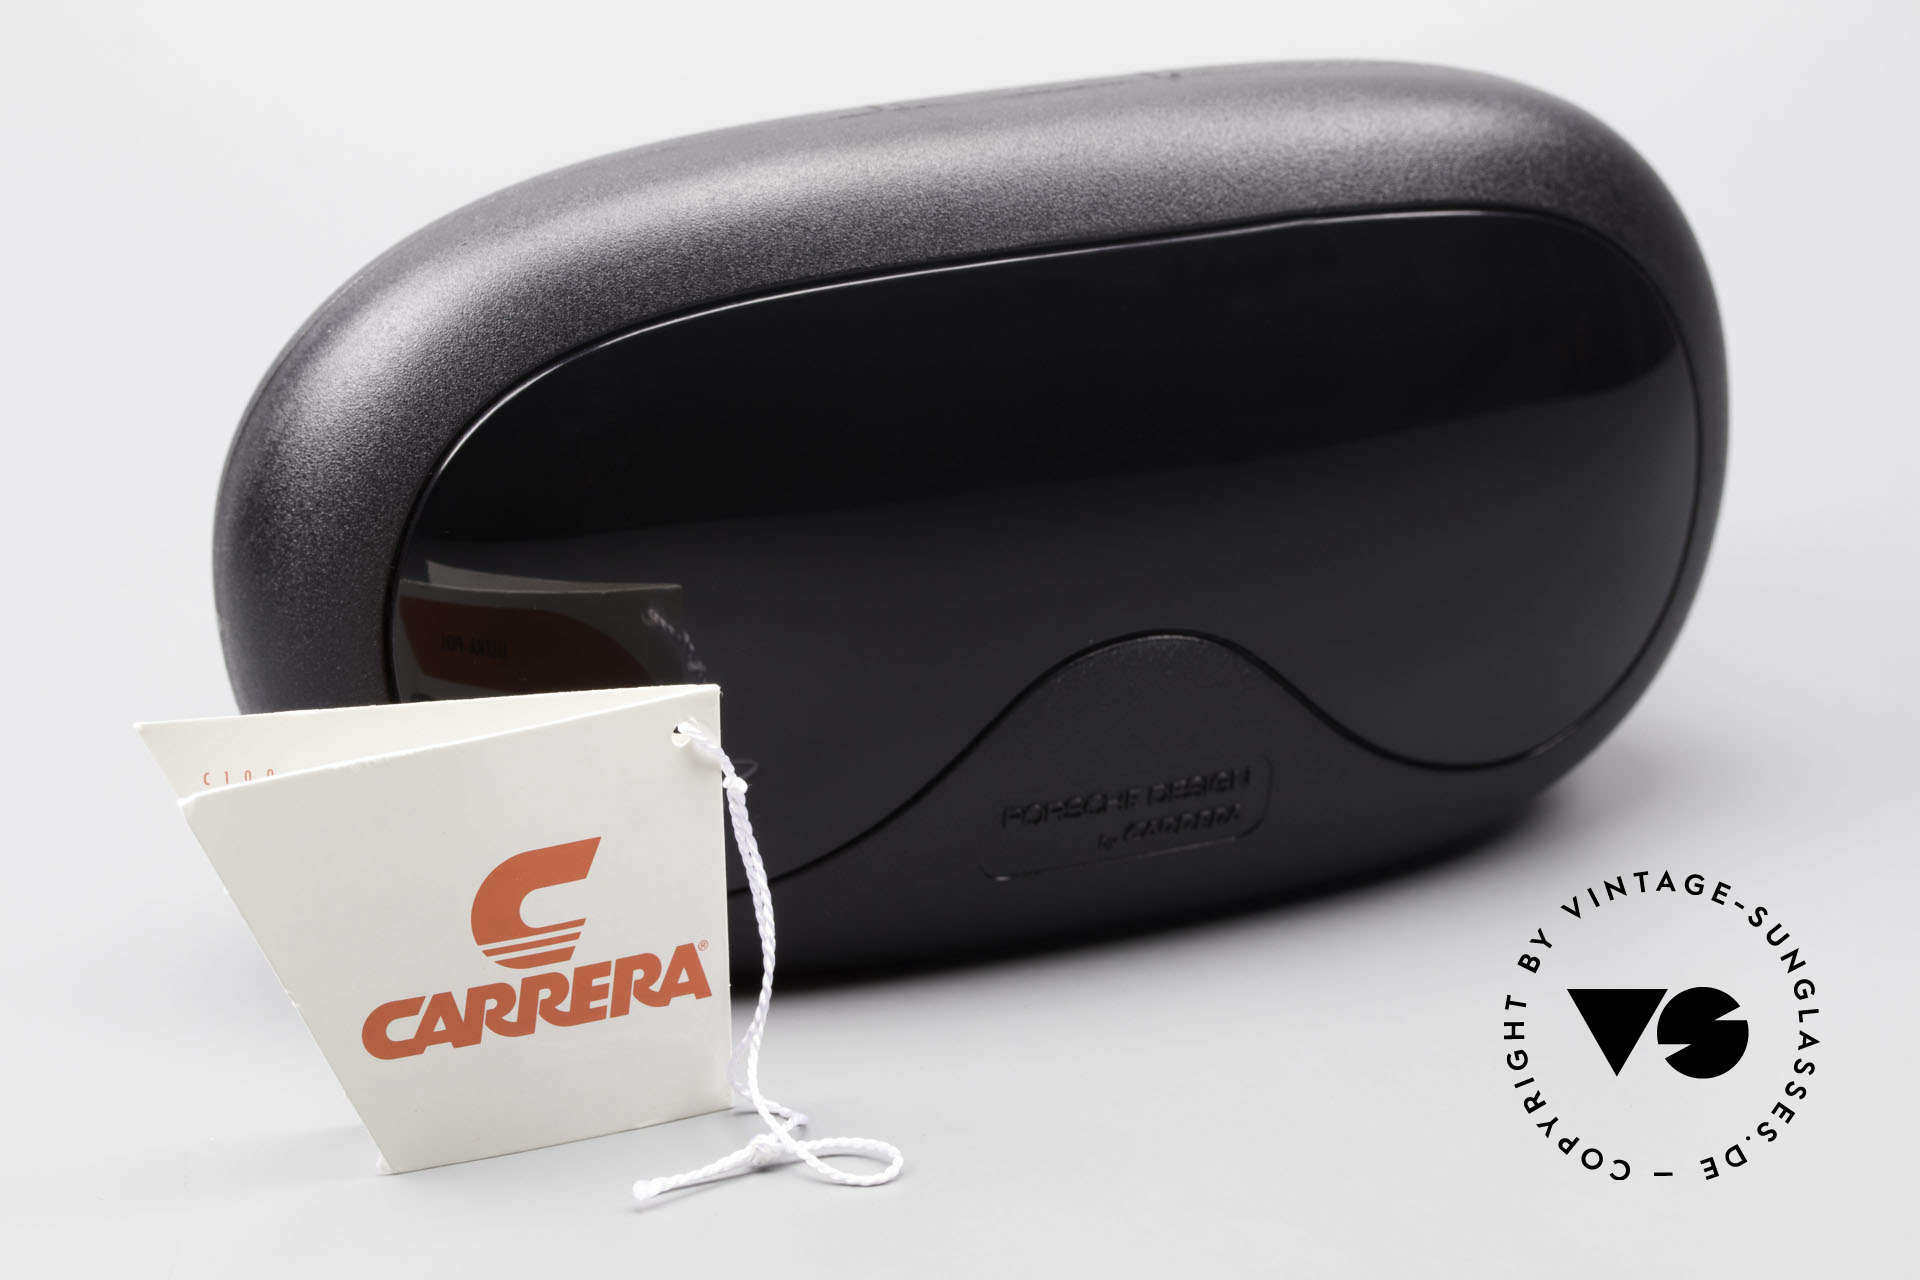 Carrera 5512 Iconic 80's Vintage Sunglasses, Size: large, Made for Men